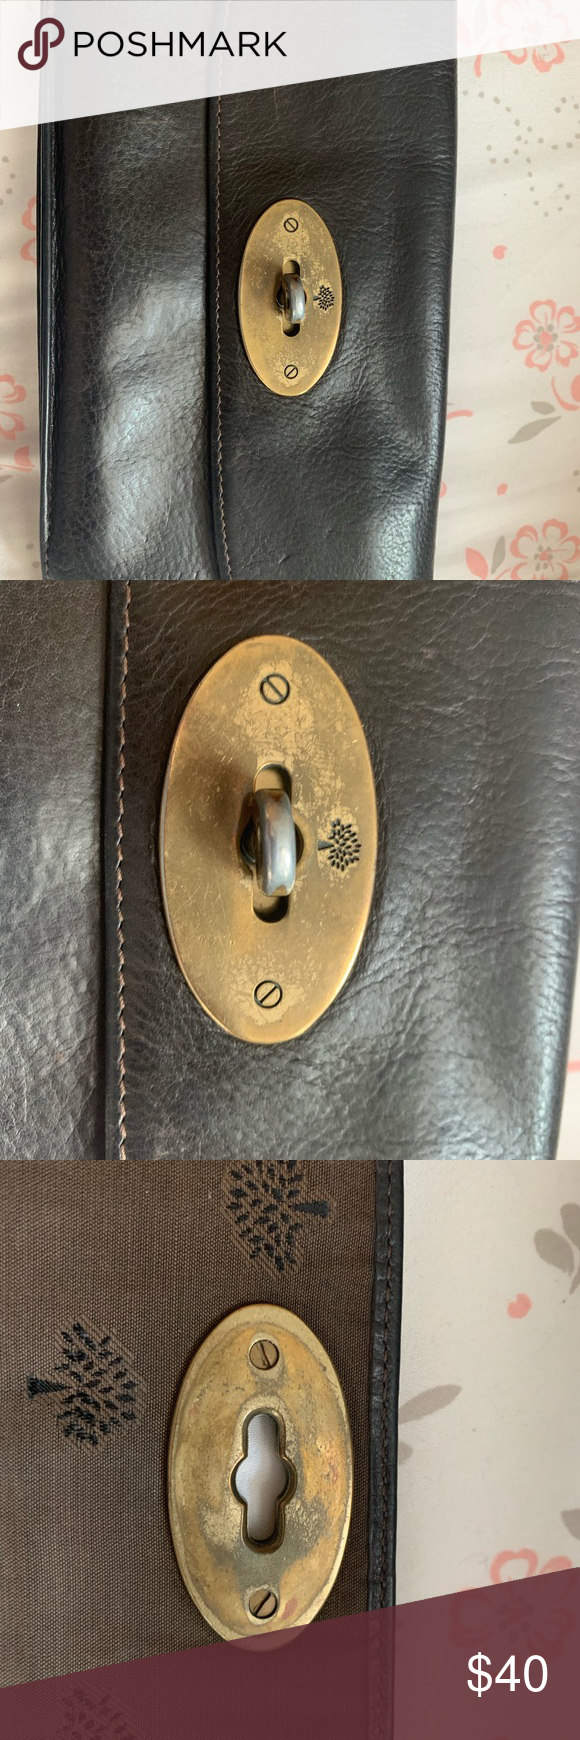 Mulberry turn lock wallet Well used wallet, still a Mulberry classic, no damage apart from marks and scratches on leather and lock, zipper working perfectly. Mulberry Bags Wallets #mulberrybag